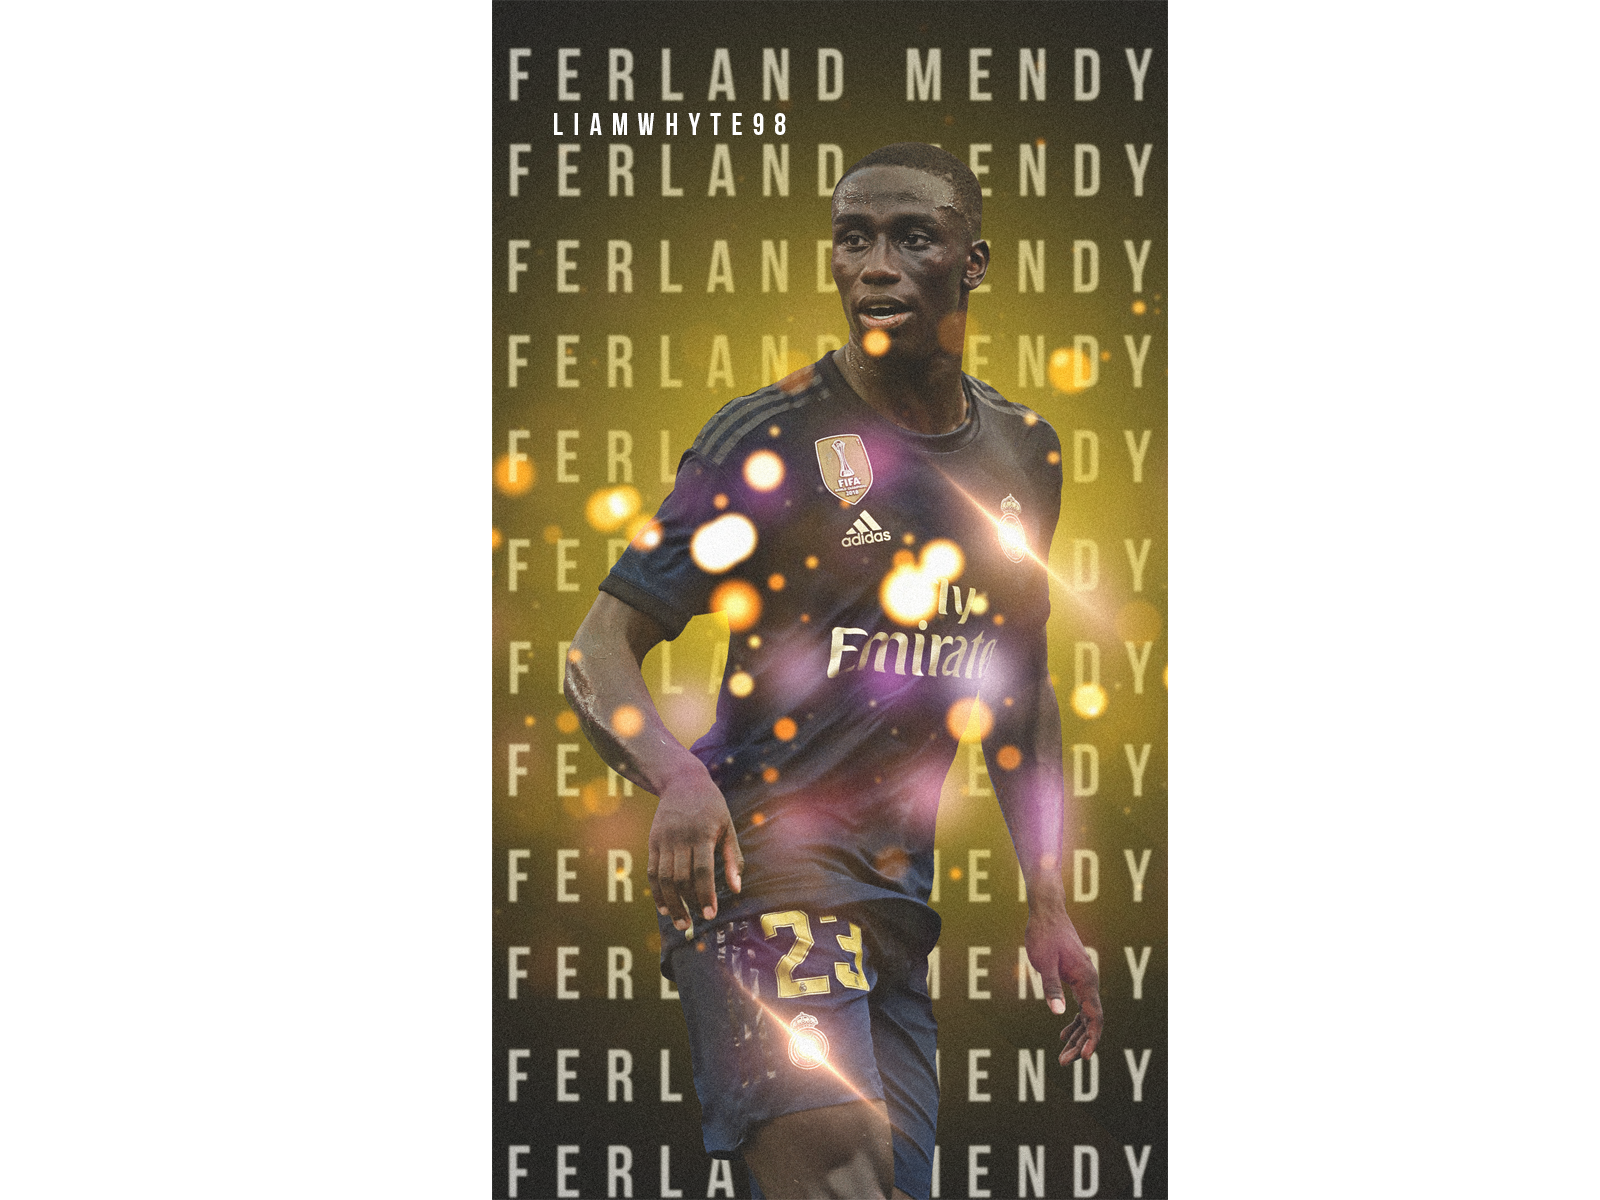 Ferland Mendy Real Madrid S French Left Back By Liam Whyte On Dribbble